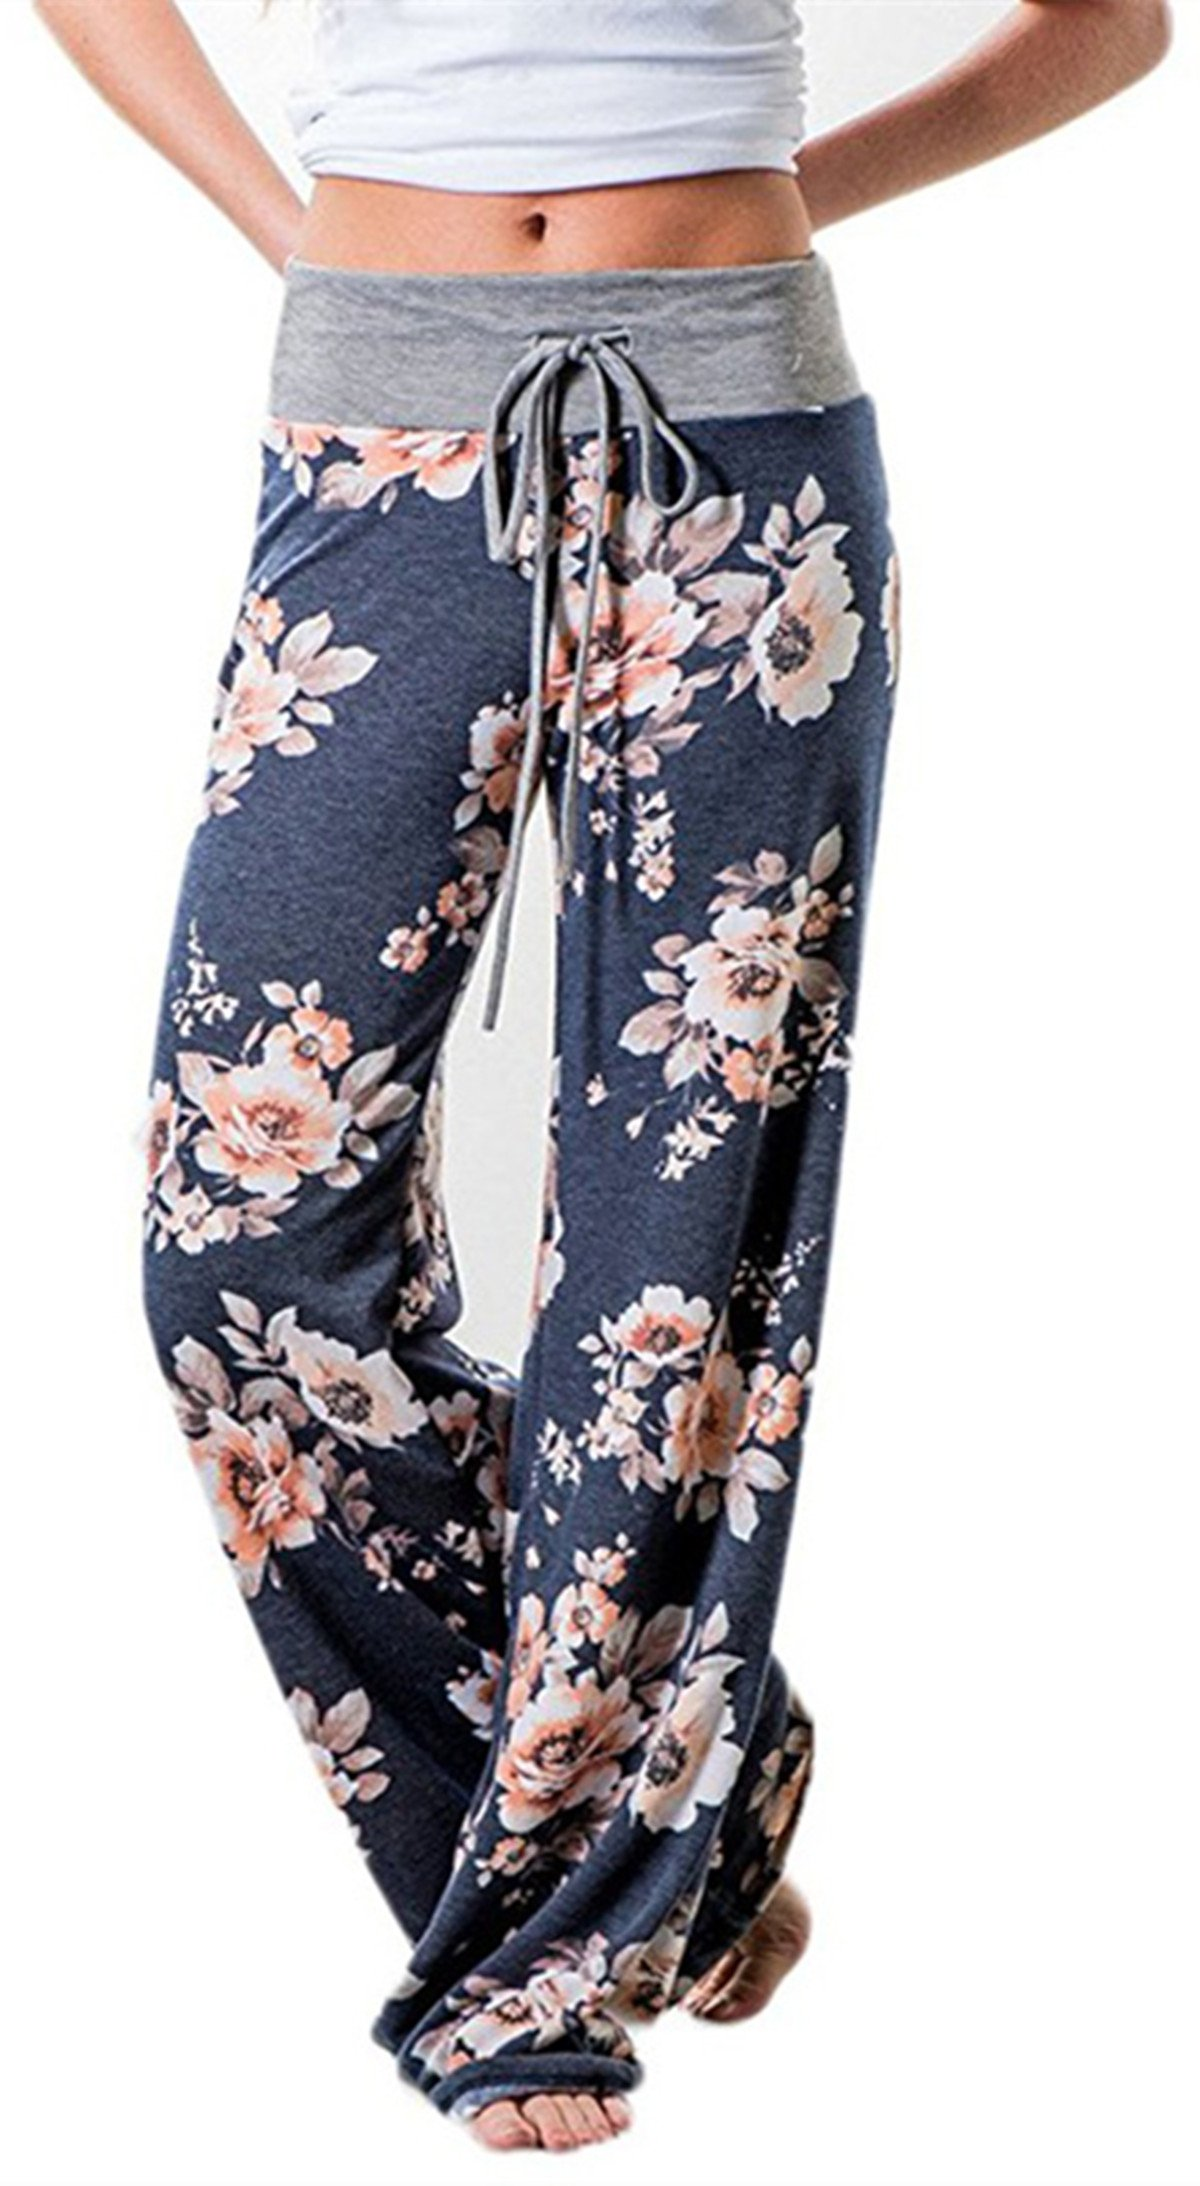 Sexymee Women's Floral Print High Waist Drawstring Casual Pajama Wide Leg Palazzo Lounge Pants Yoga